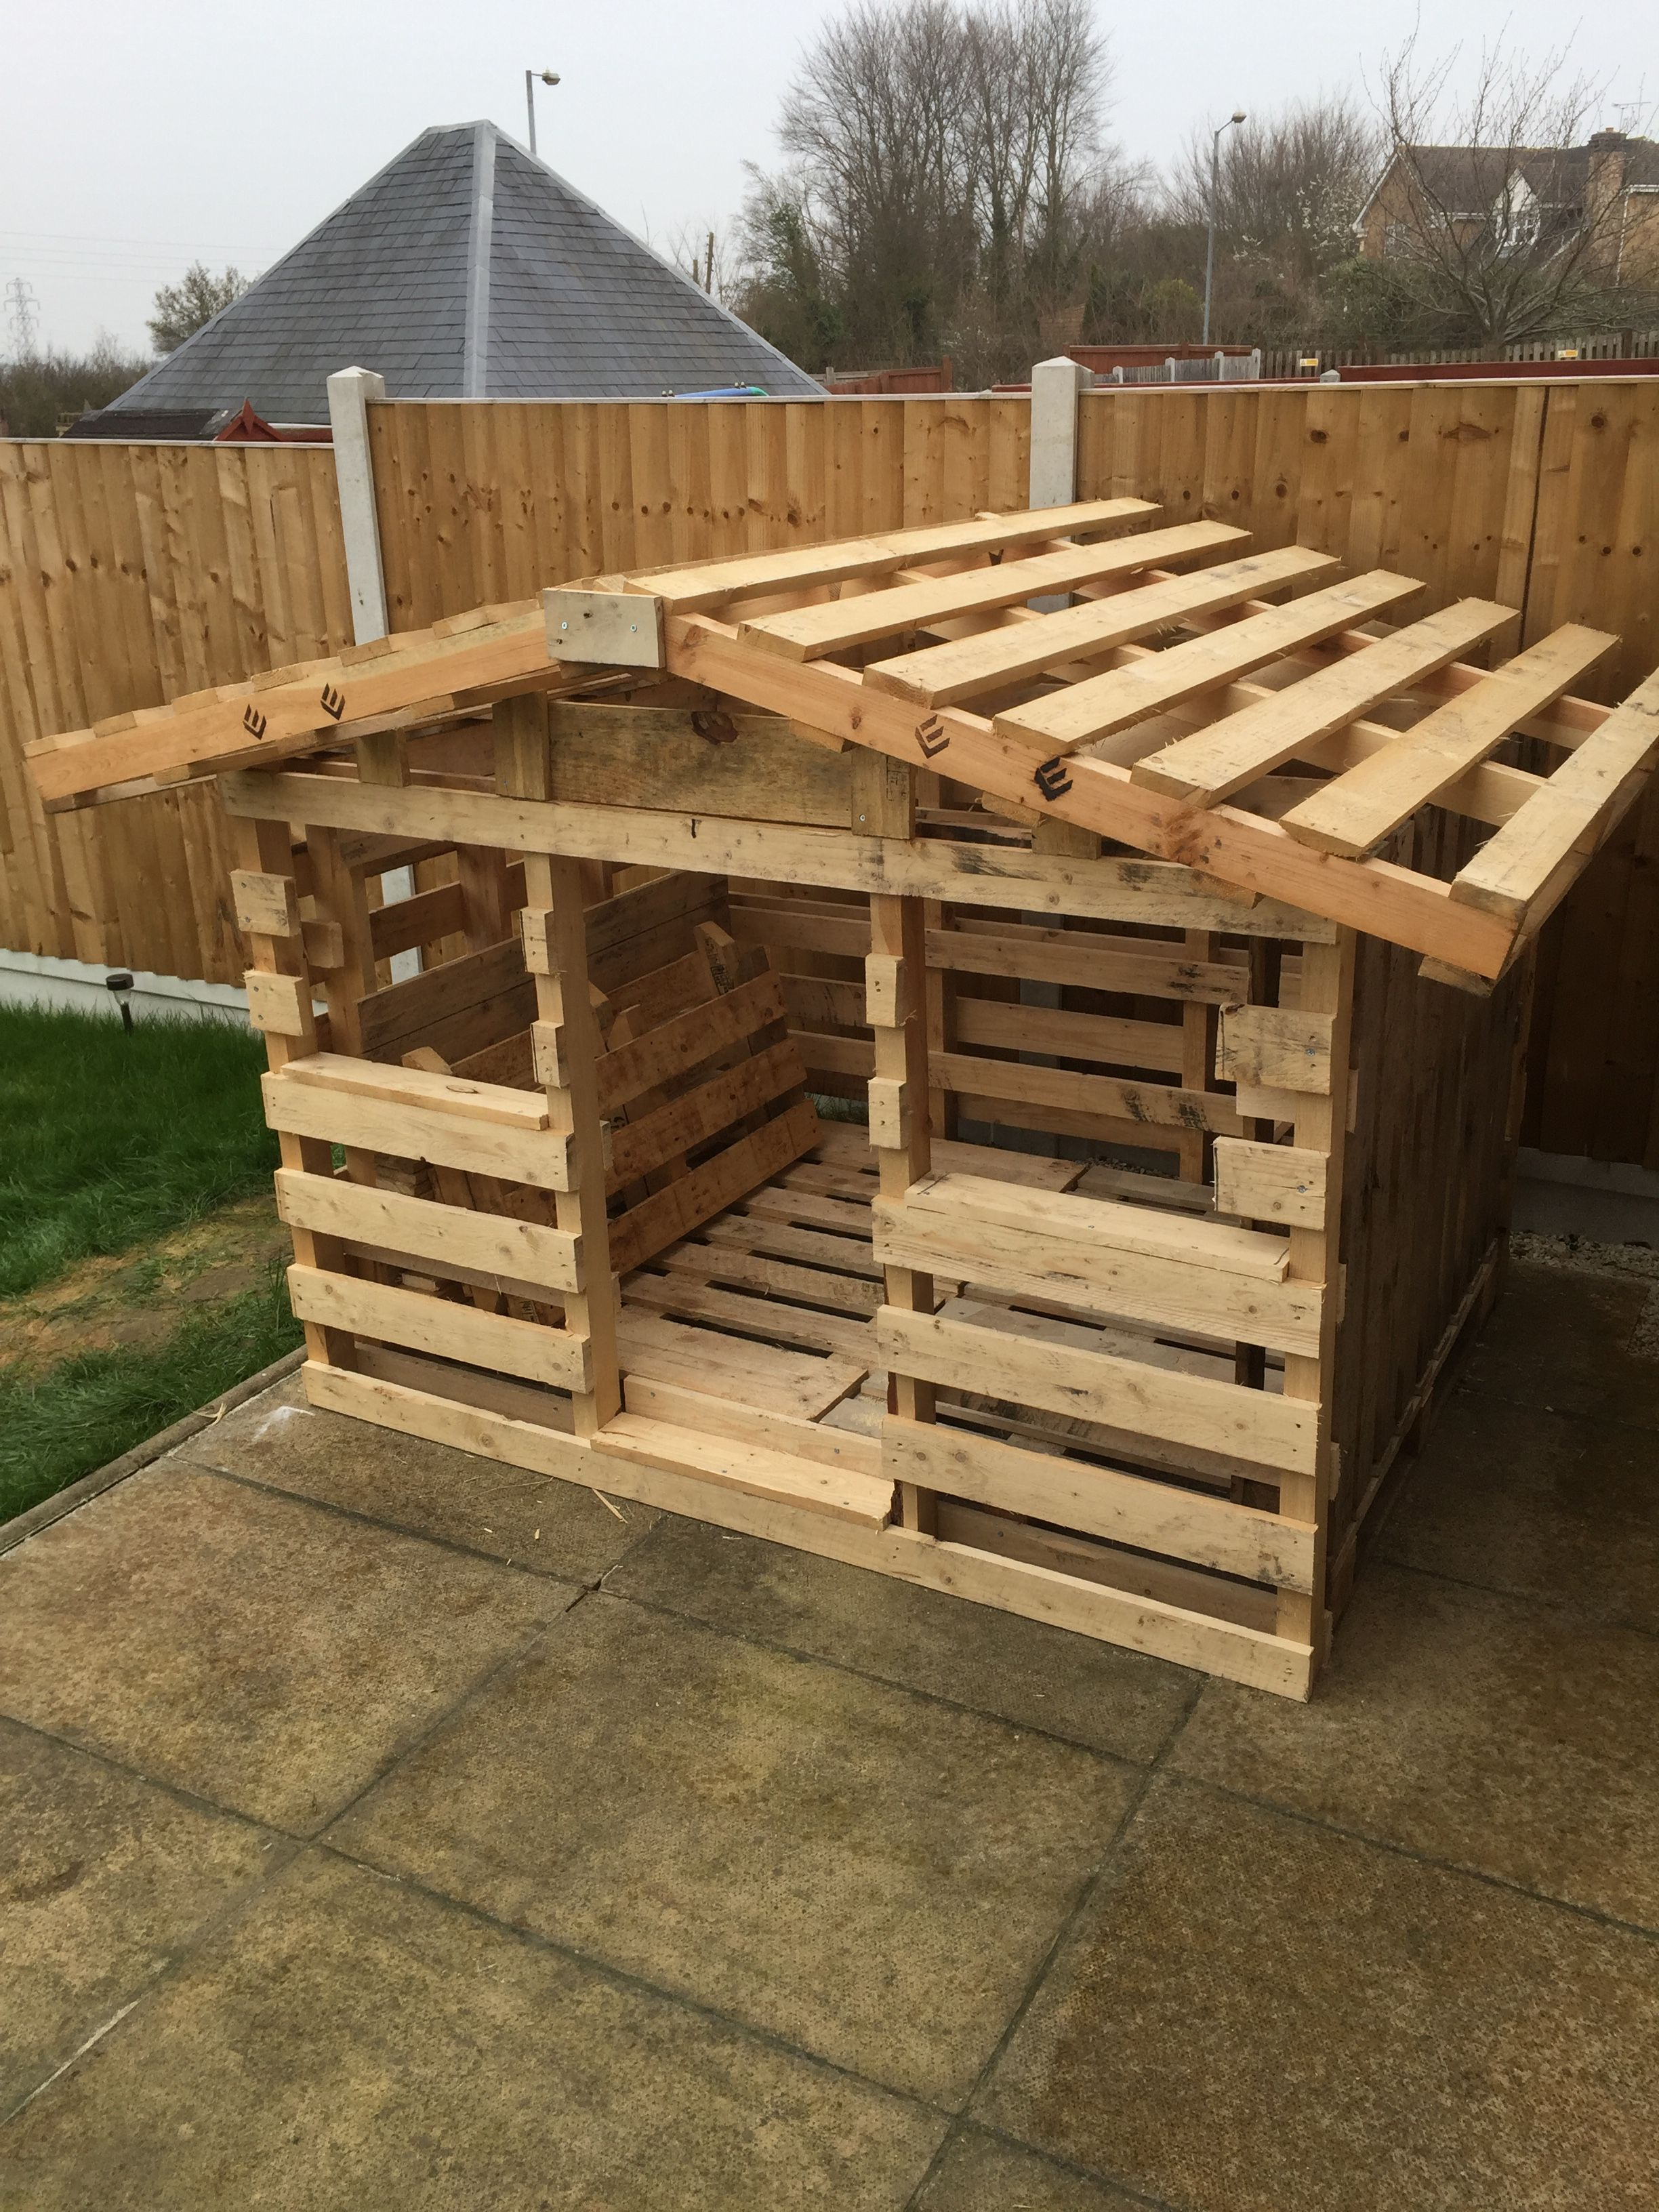 Pallet Playhouse Pallet Playhouse Play Houses Pallet Dog House